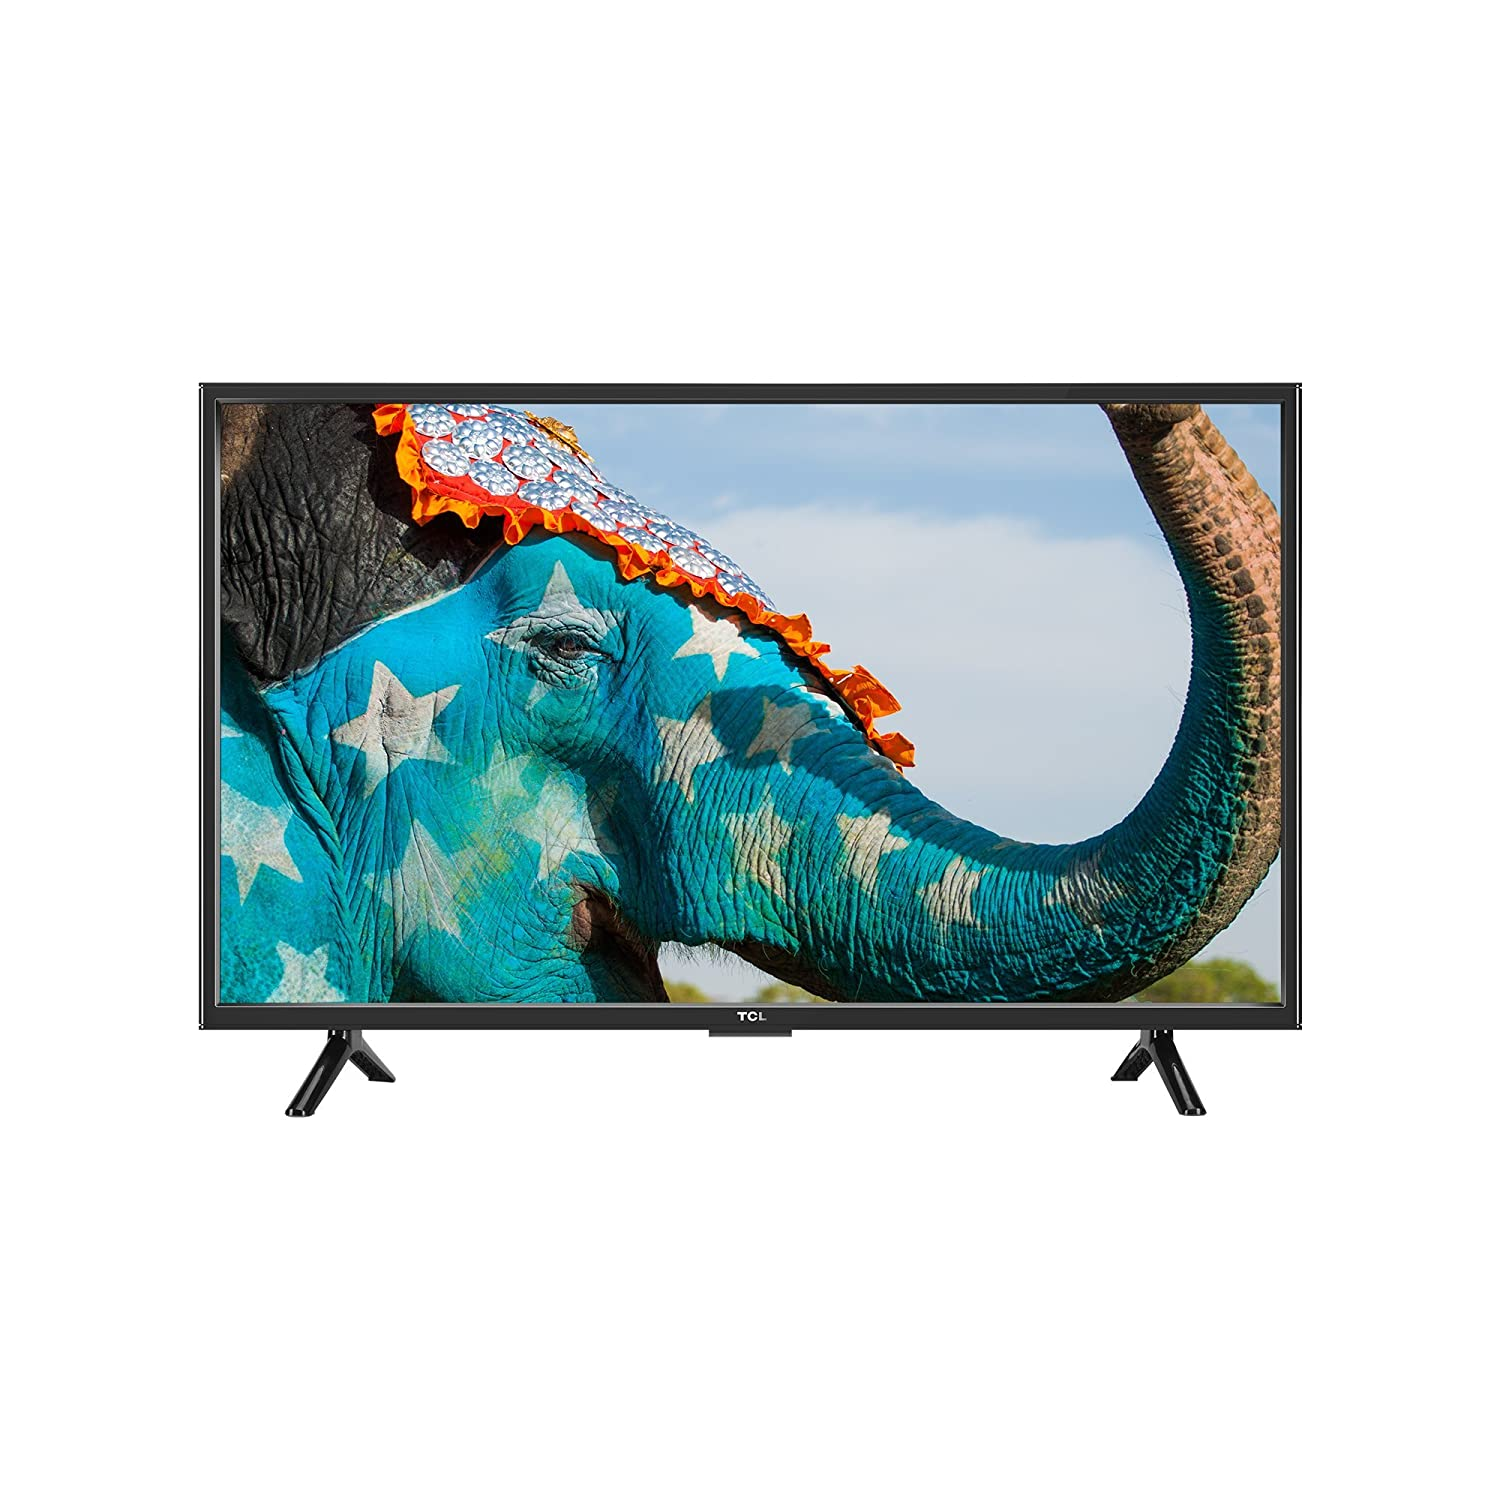 Upto 20% OFF on TCL - No cost EMI available By Amazon | TCL 81.28 cm (32 inches) L32D2900 HD Ready LED TV (Black) @ Rs.12,990